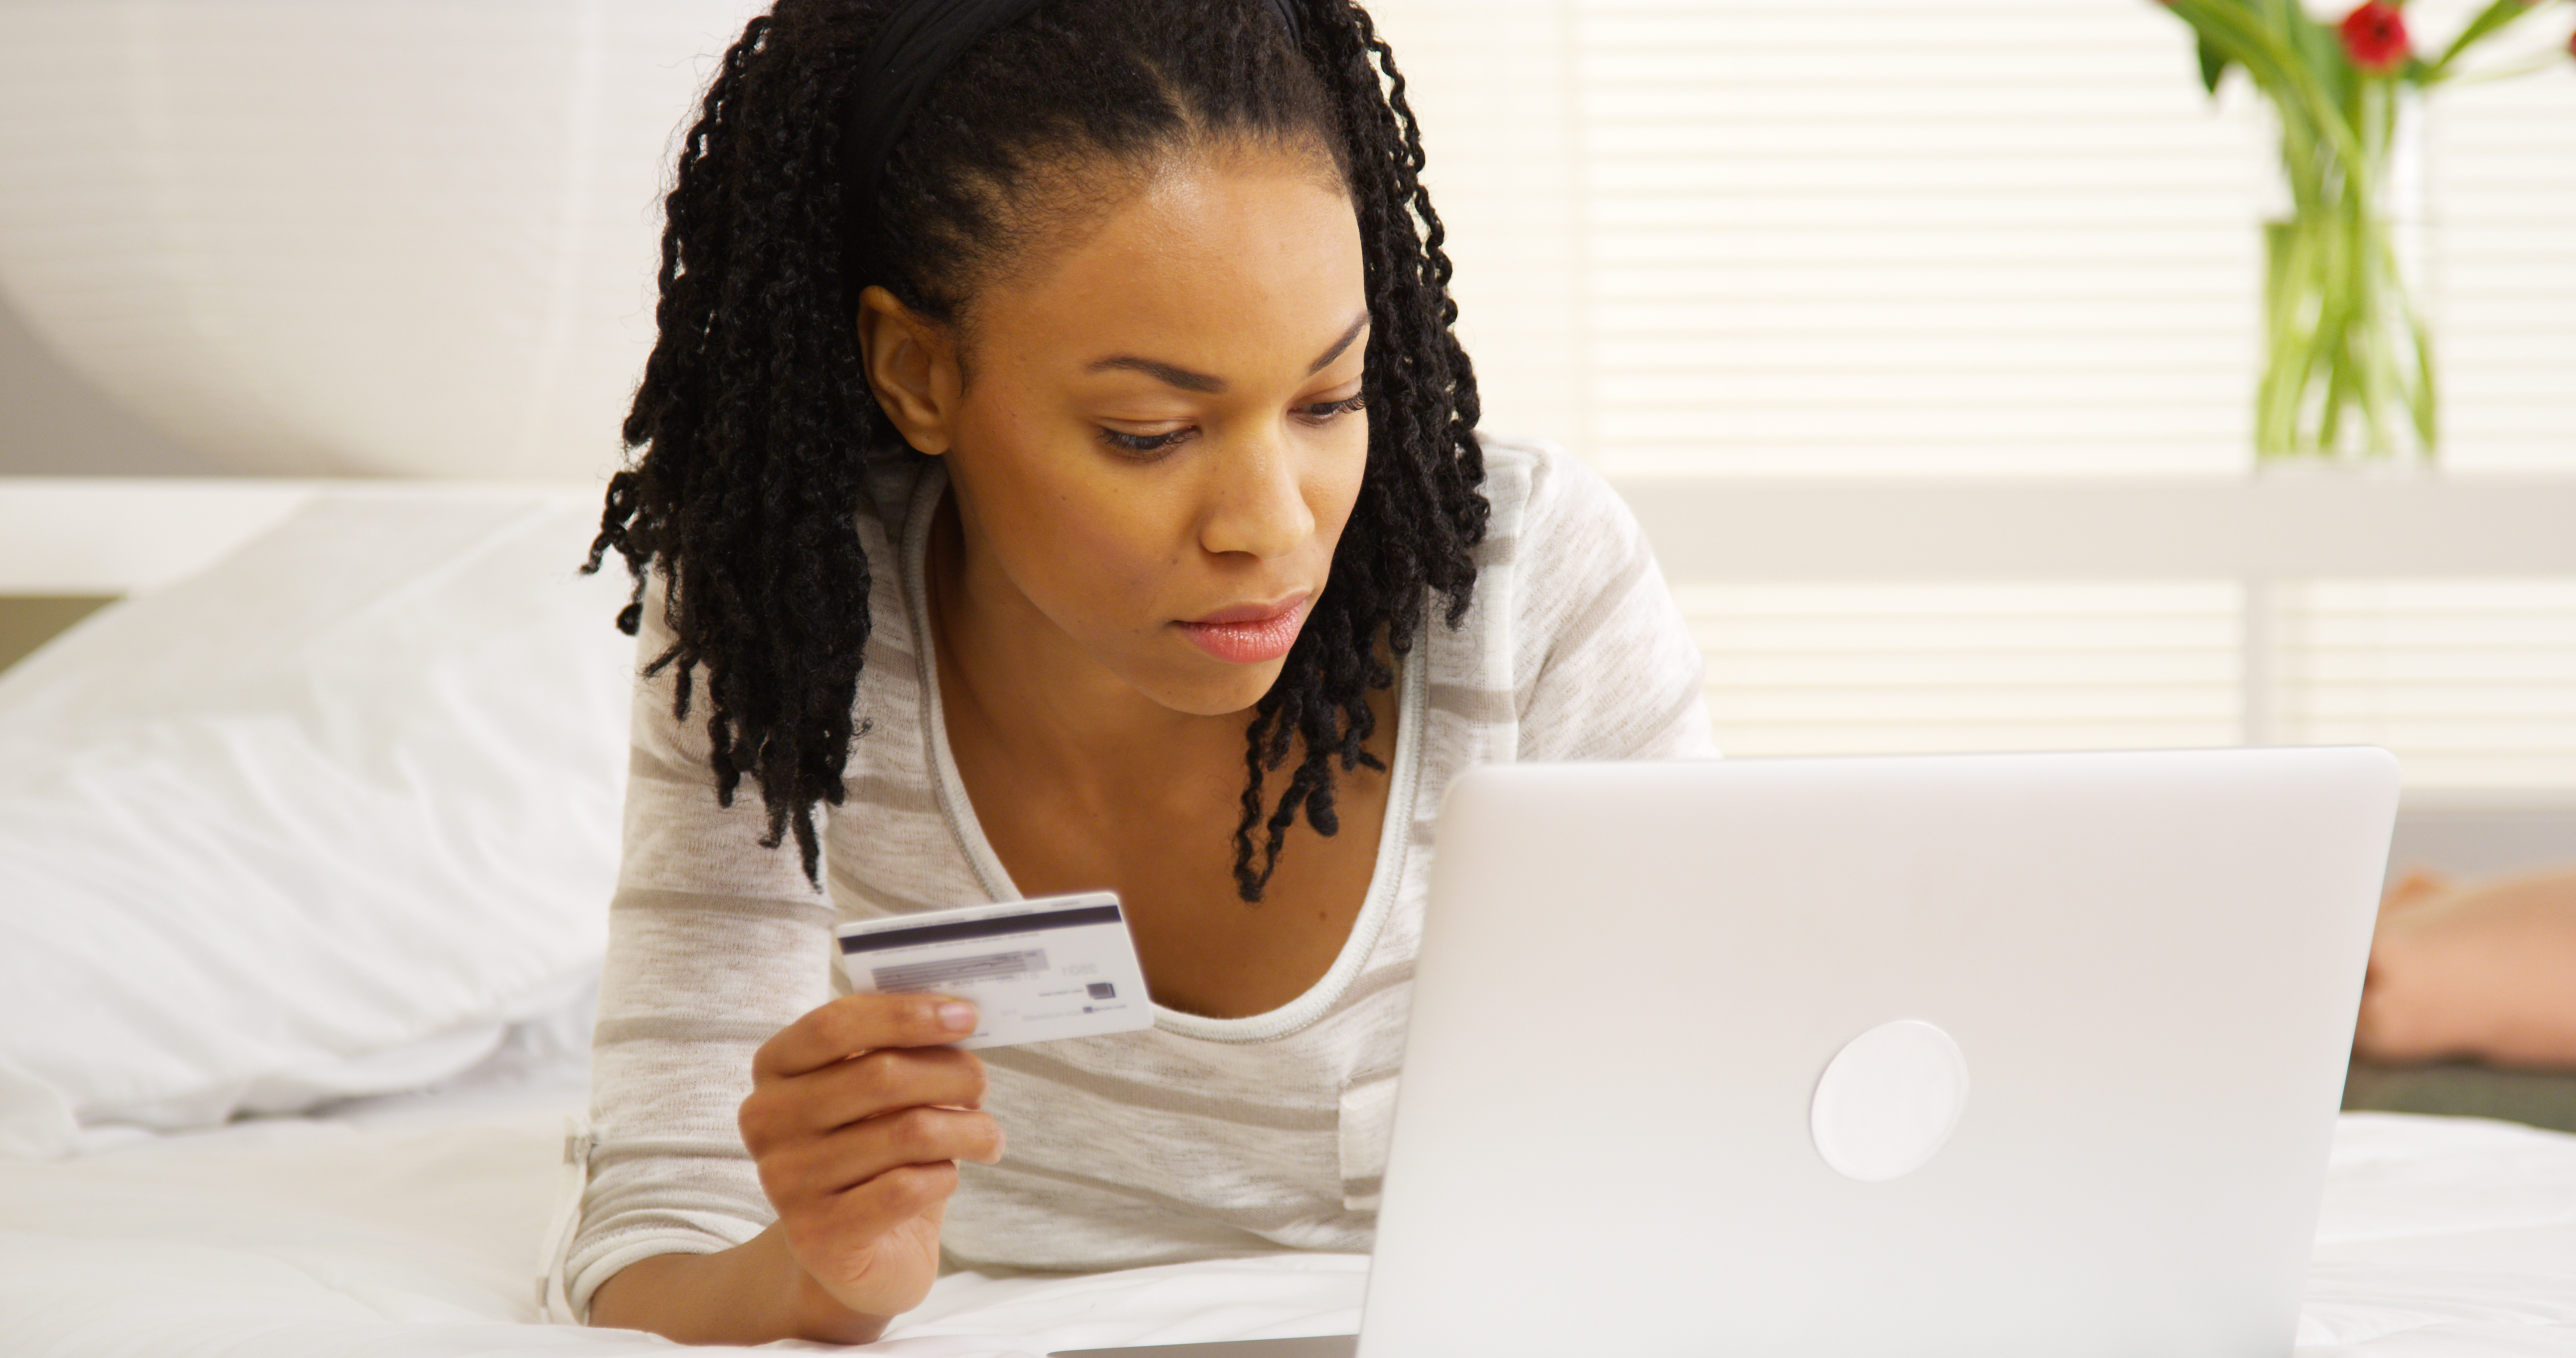 5 Key Advantages to Purchasing With a Debit Card